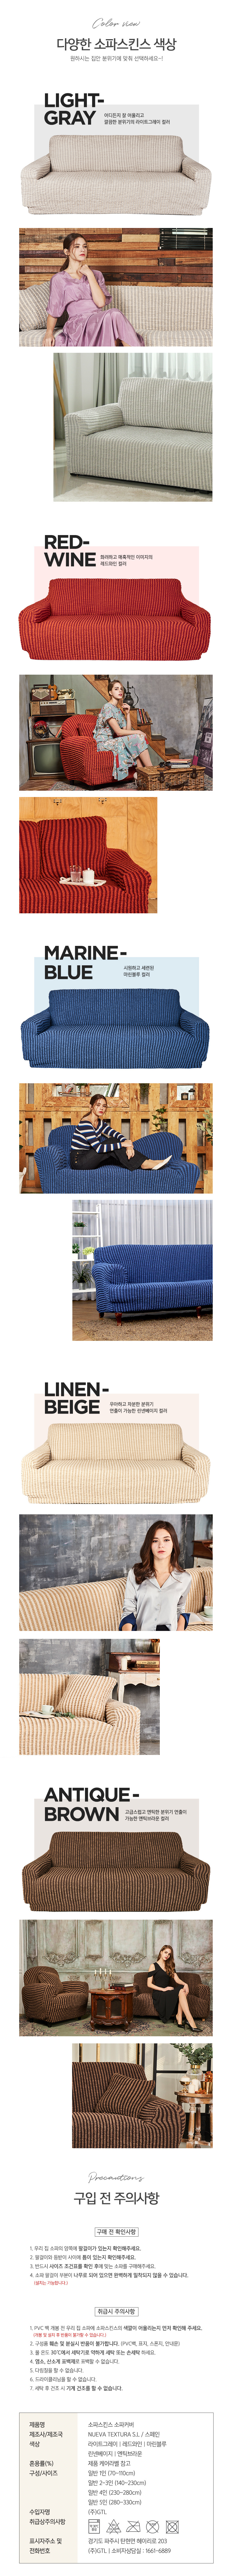 4sofa_color_gordon.jpg